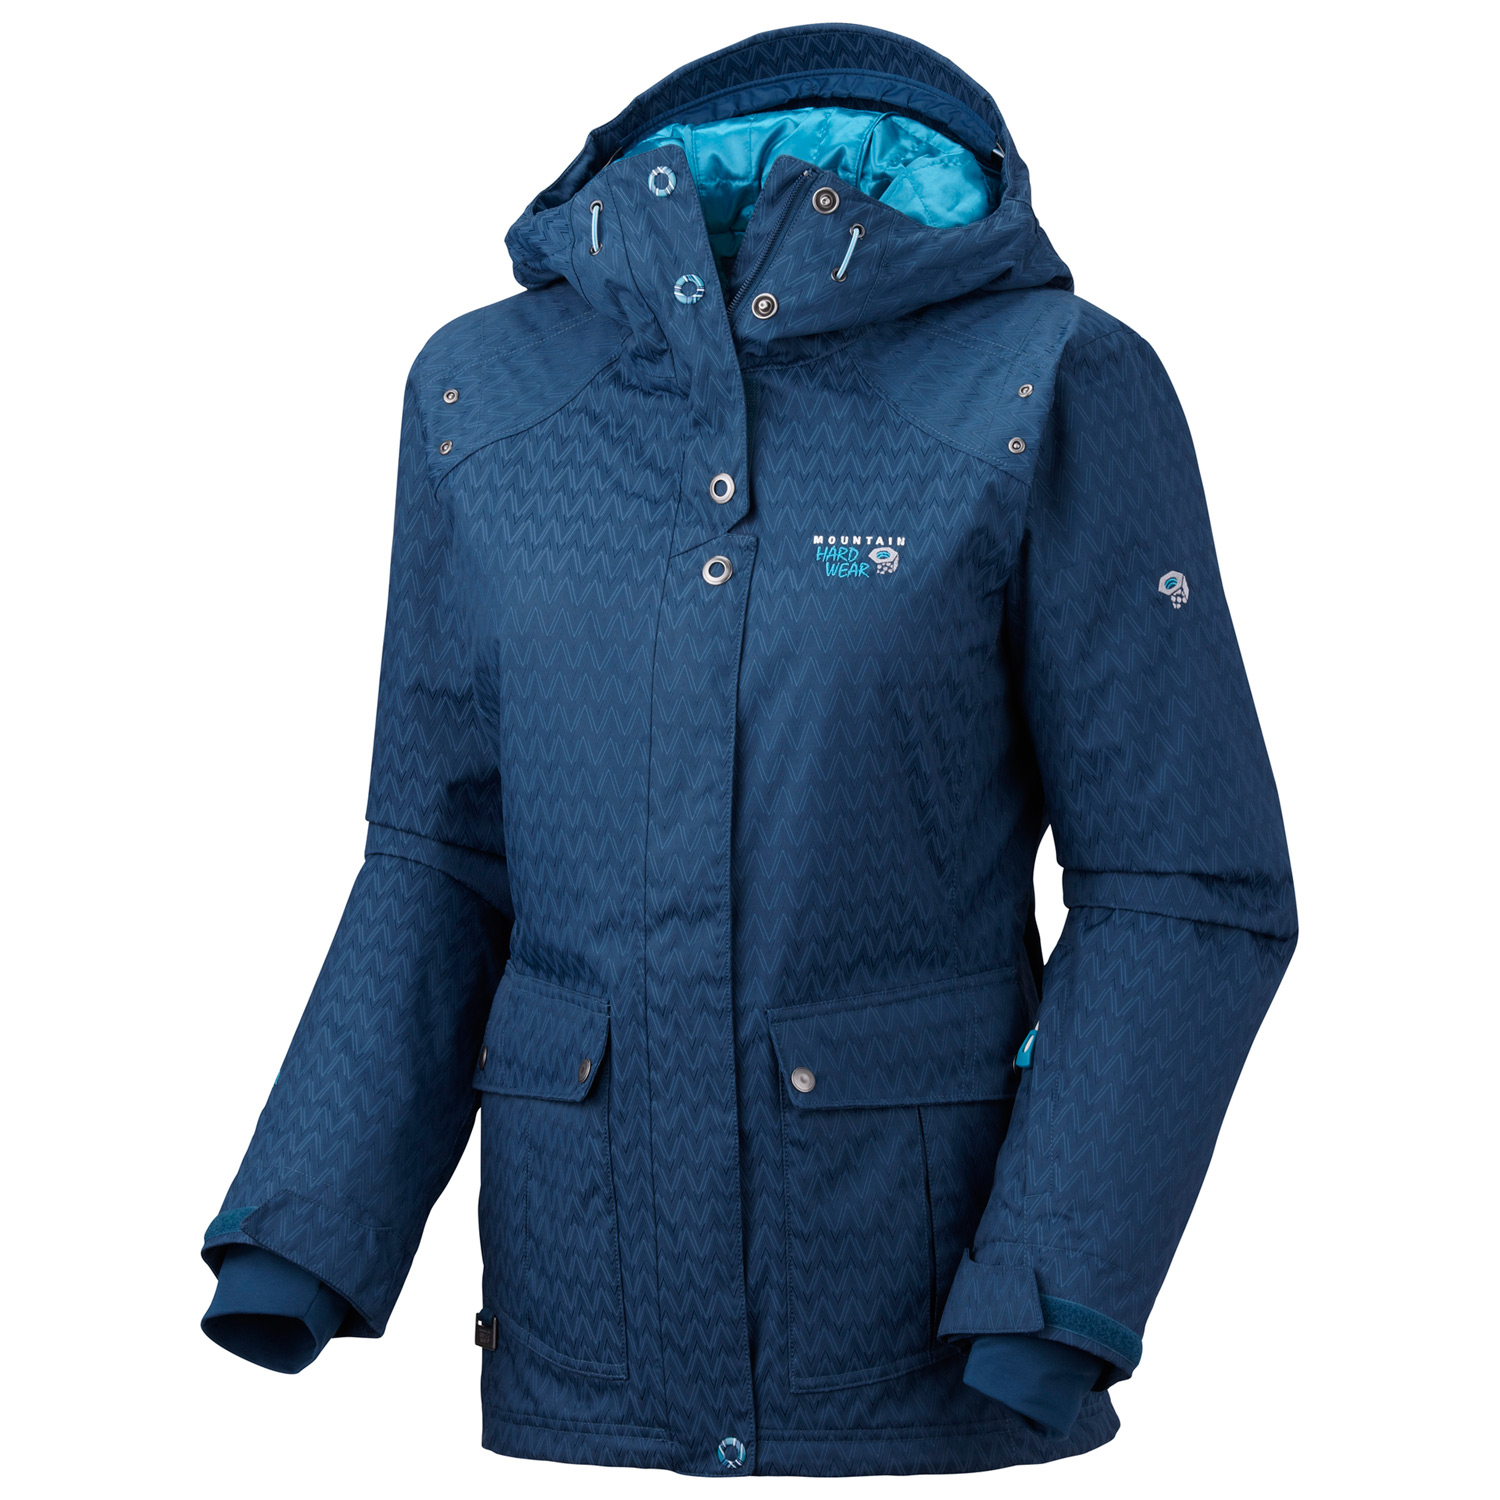 Ski Waterproof and warm, with variable synthetic insulation in the body and sleeves. This jacket is the perfect companion on the ski hill. - $192.95